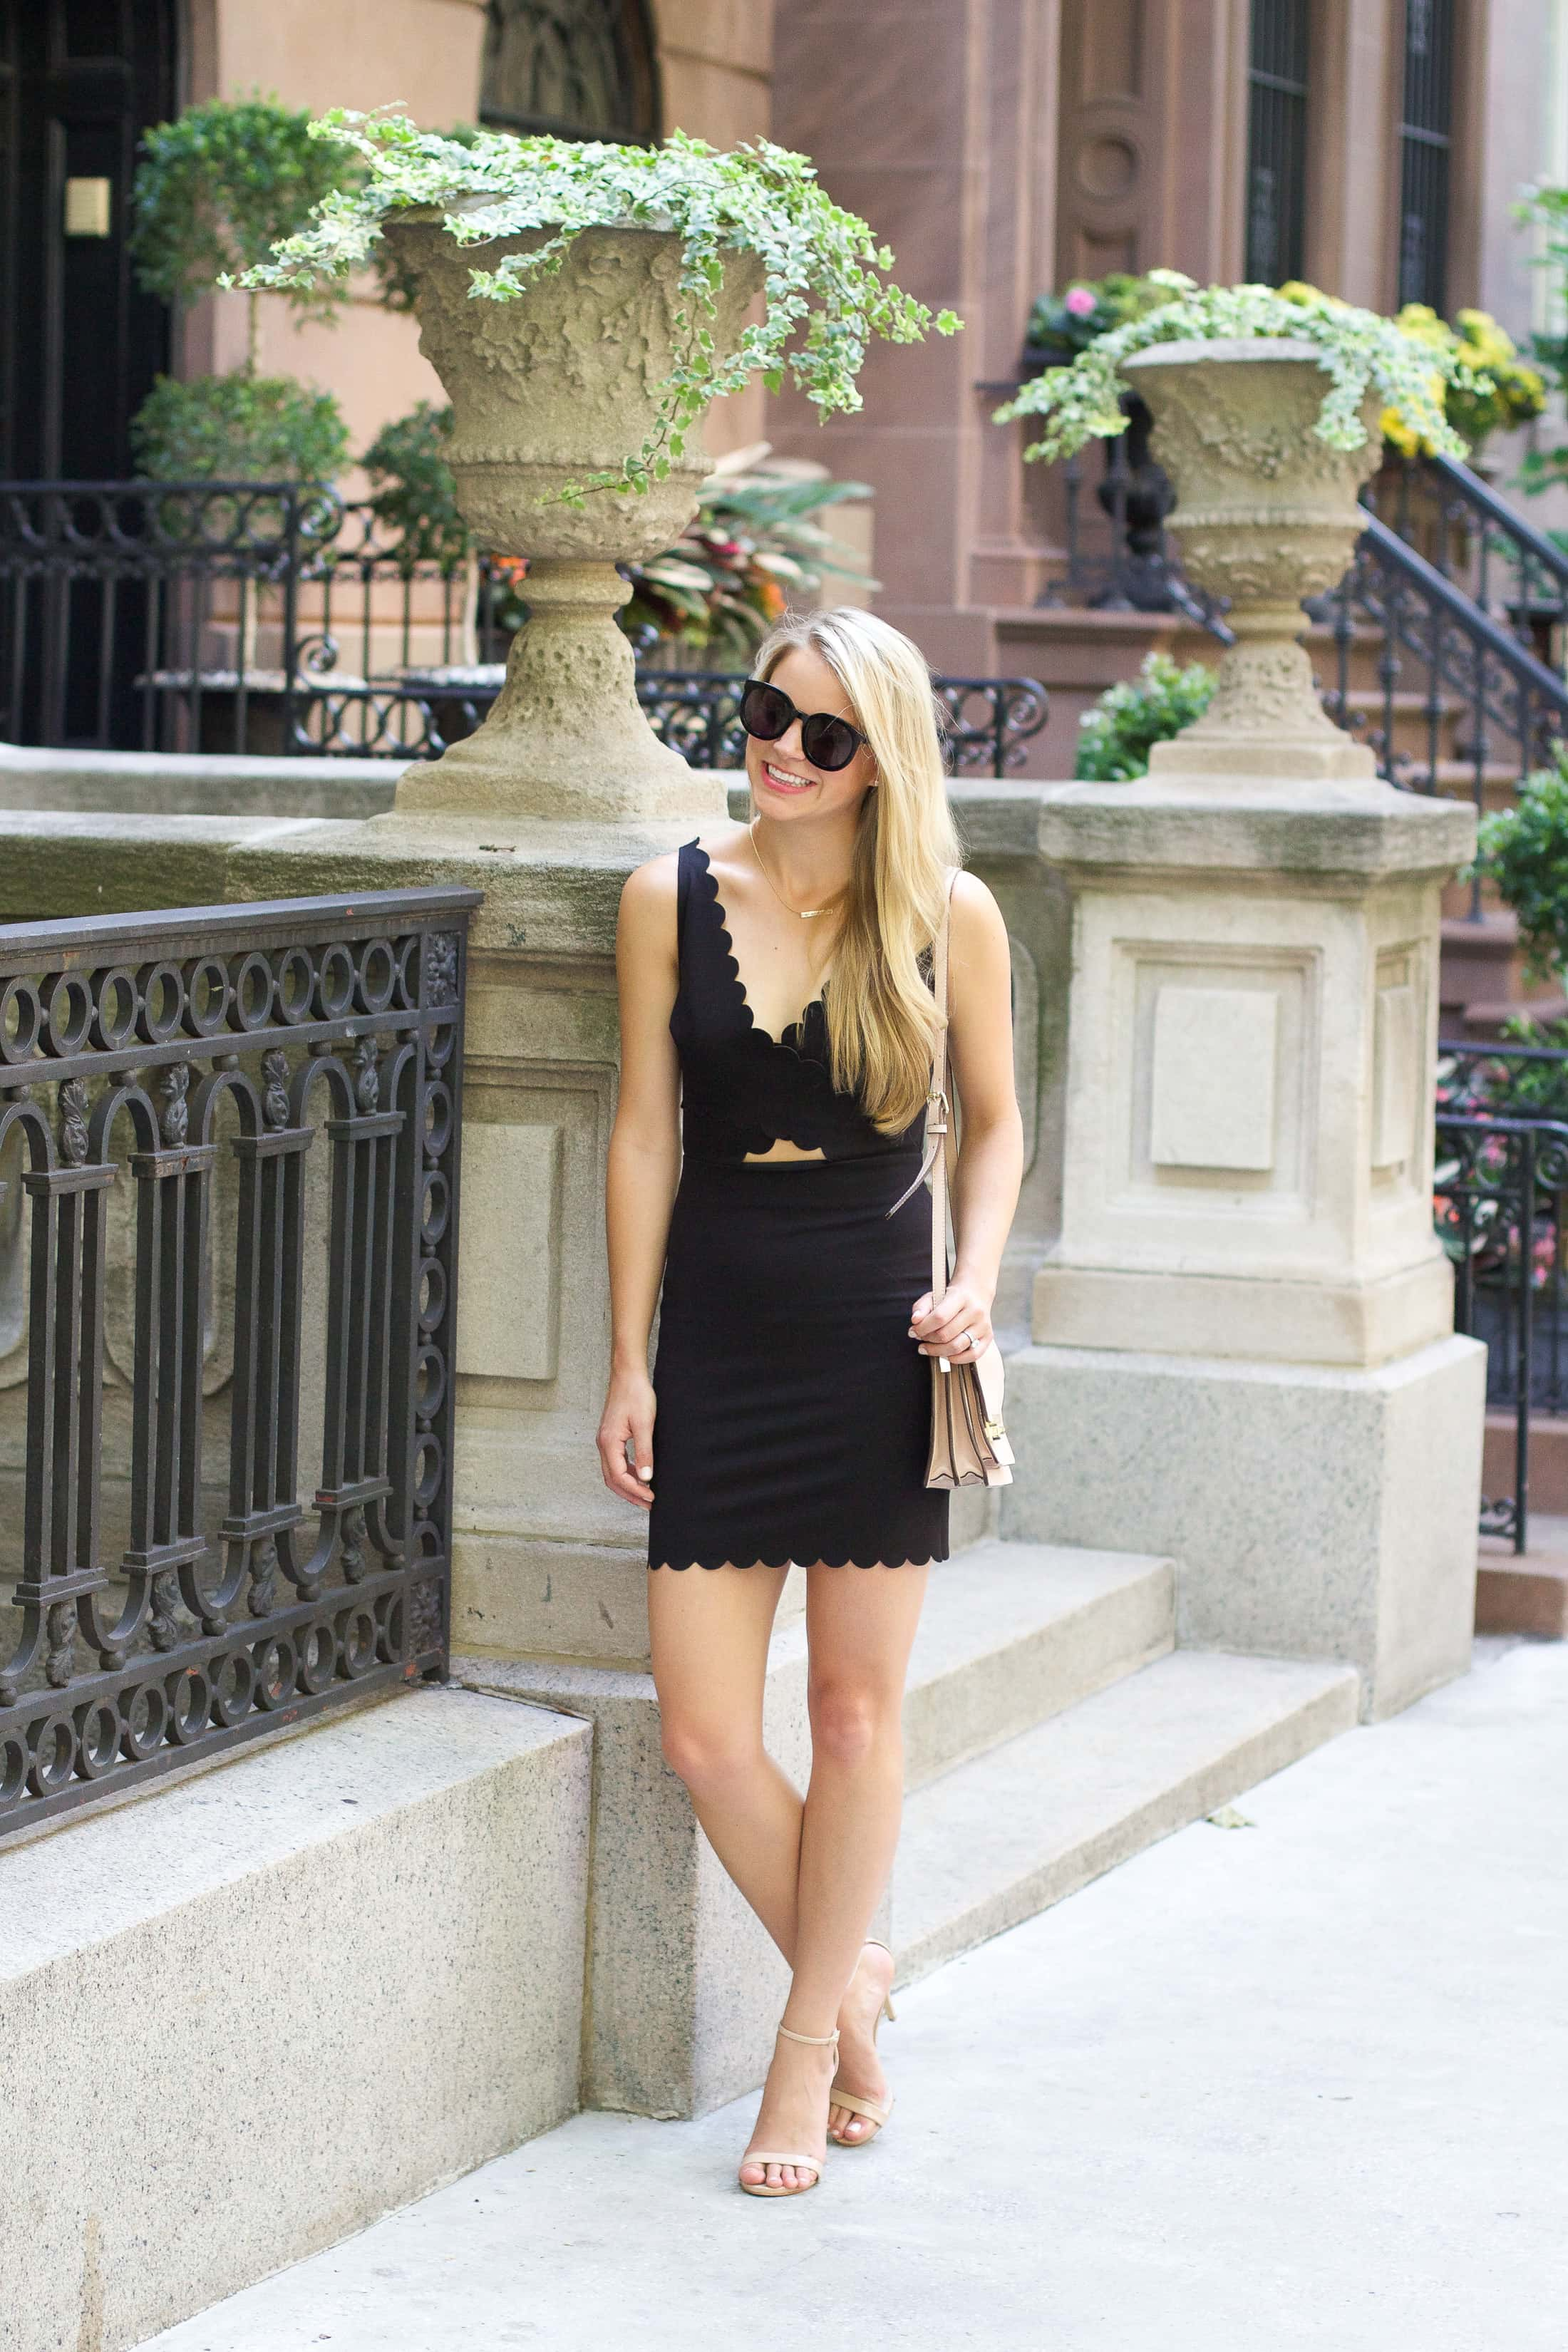 little back dress, styled snapshots